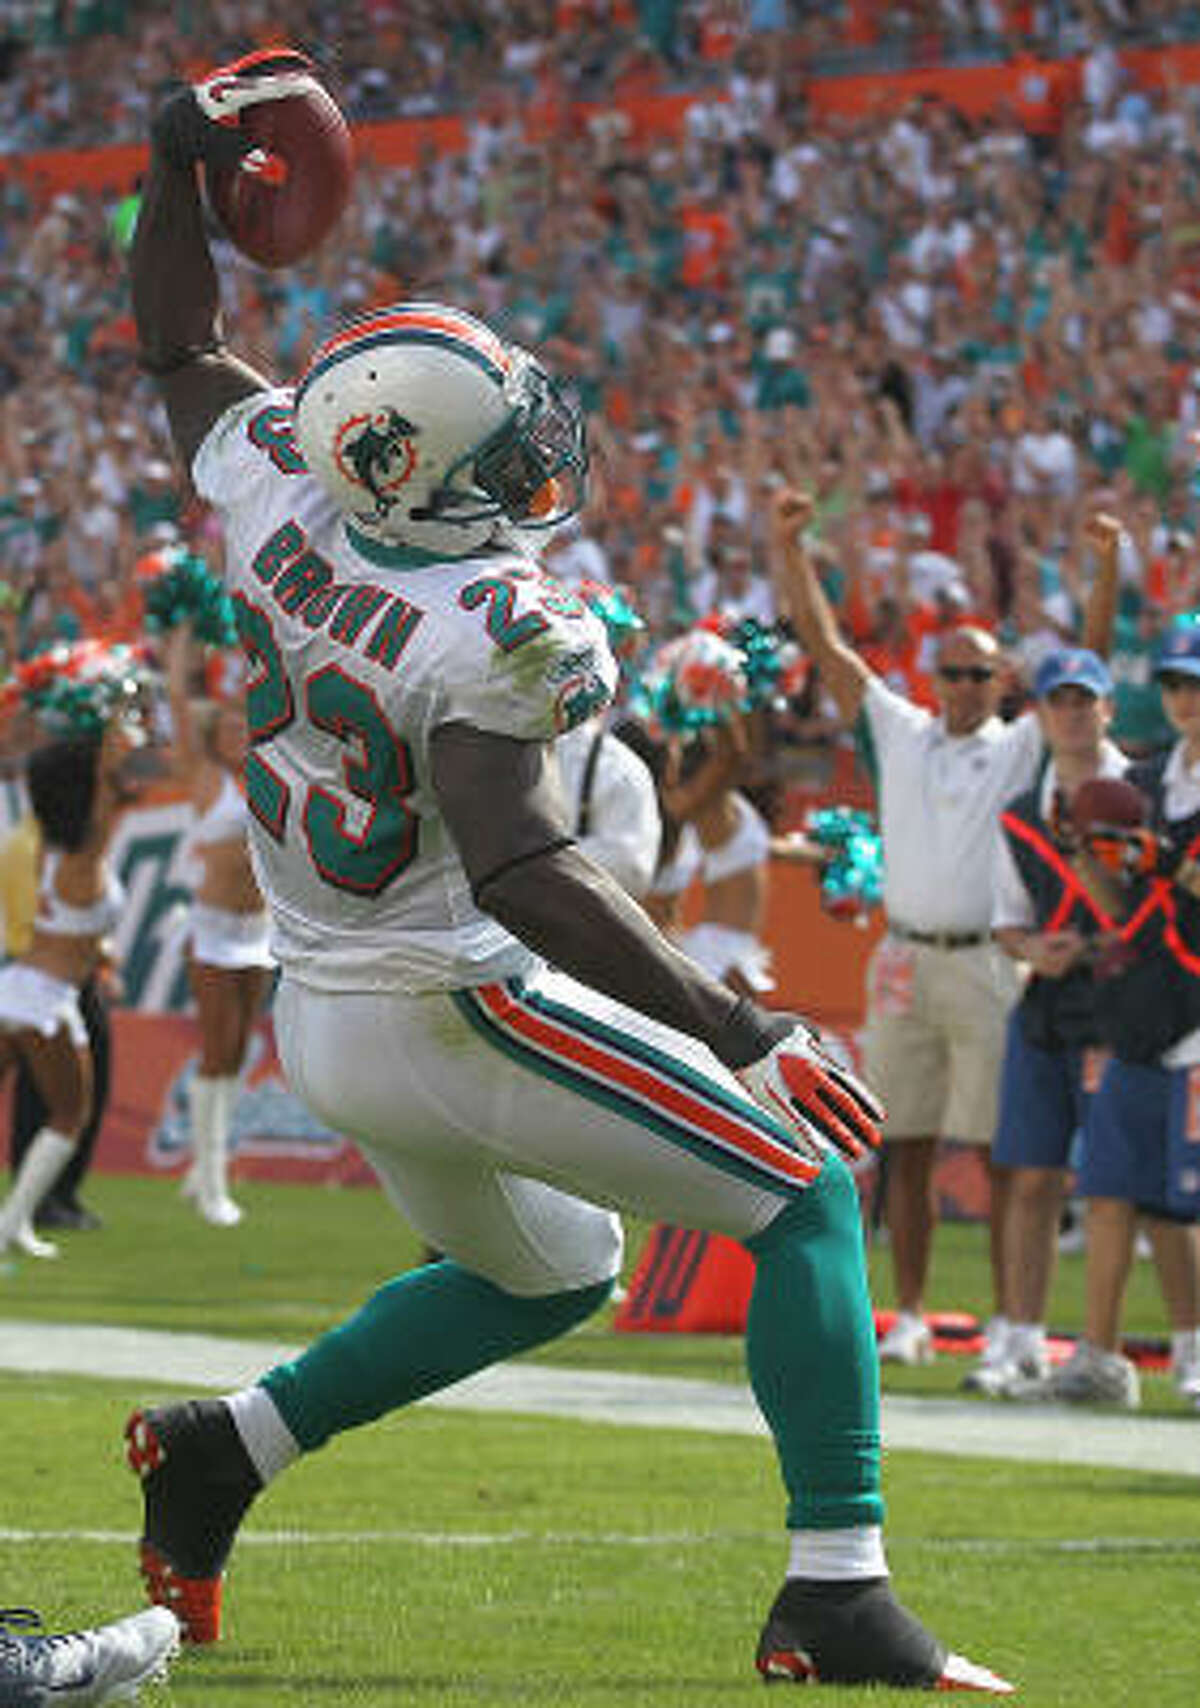 Dolphins 29, Titans 17 Dolphins running back Ronnie Brown spikes the ball after scoring a touchdown in the first quarter.